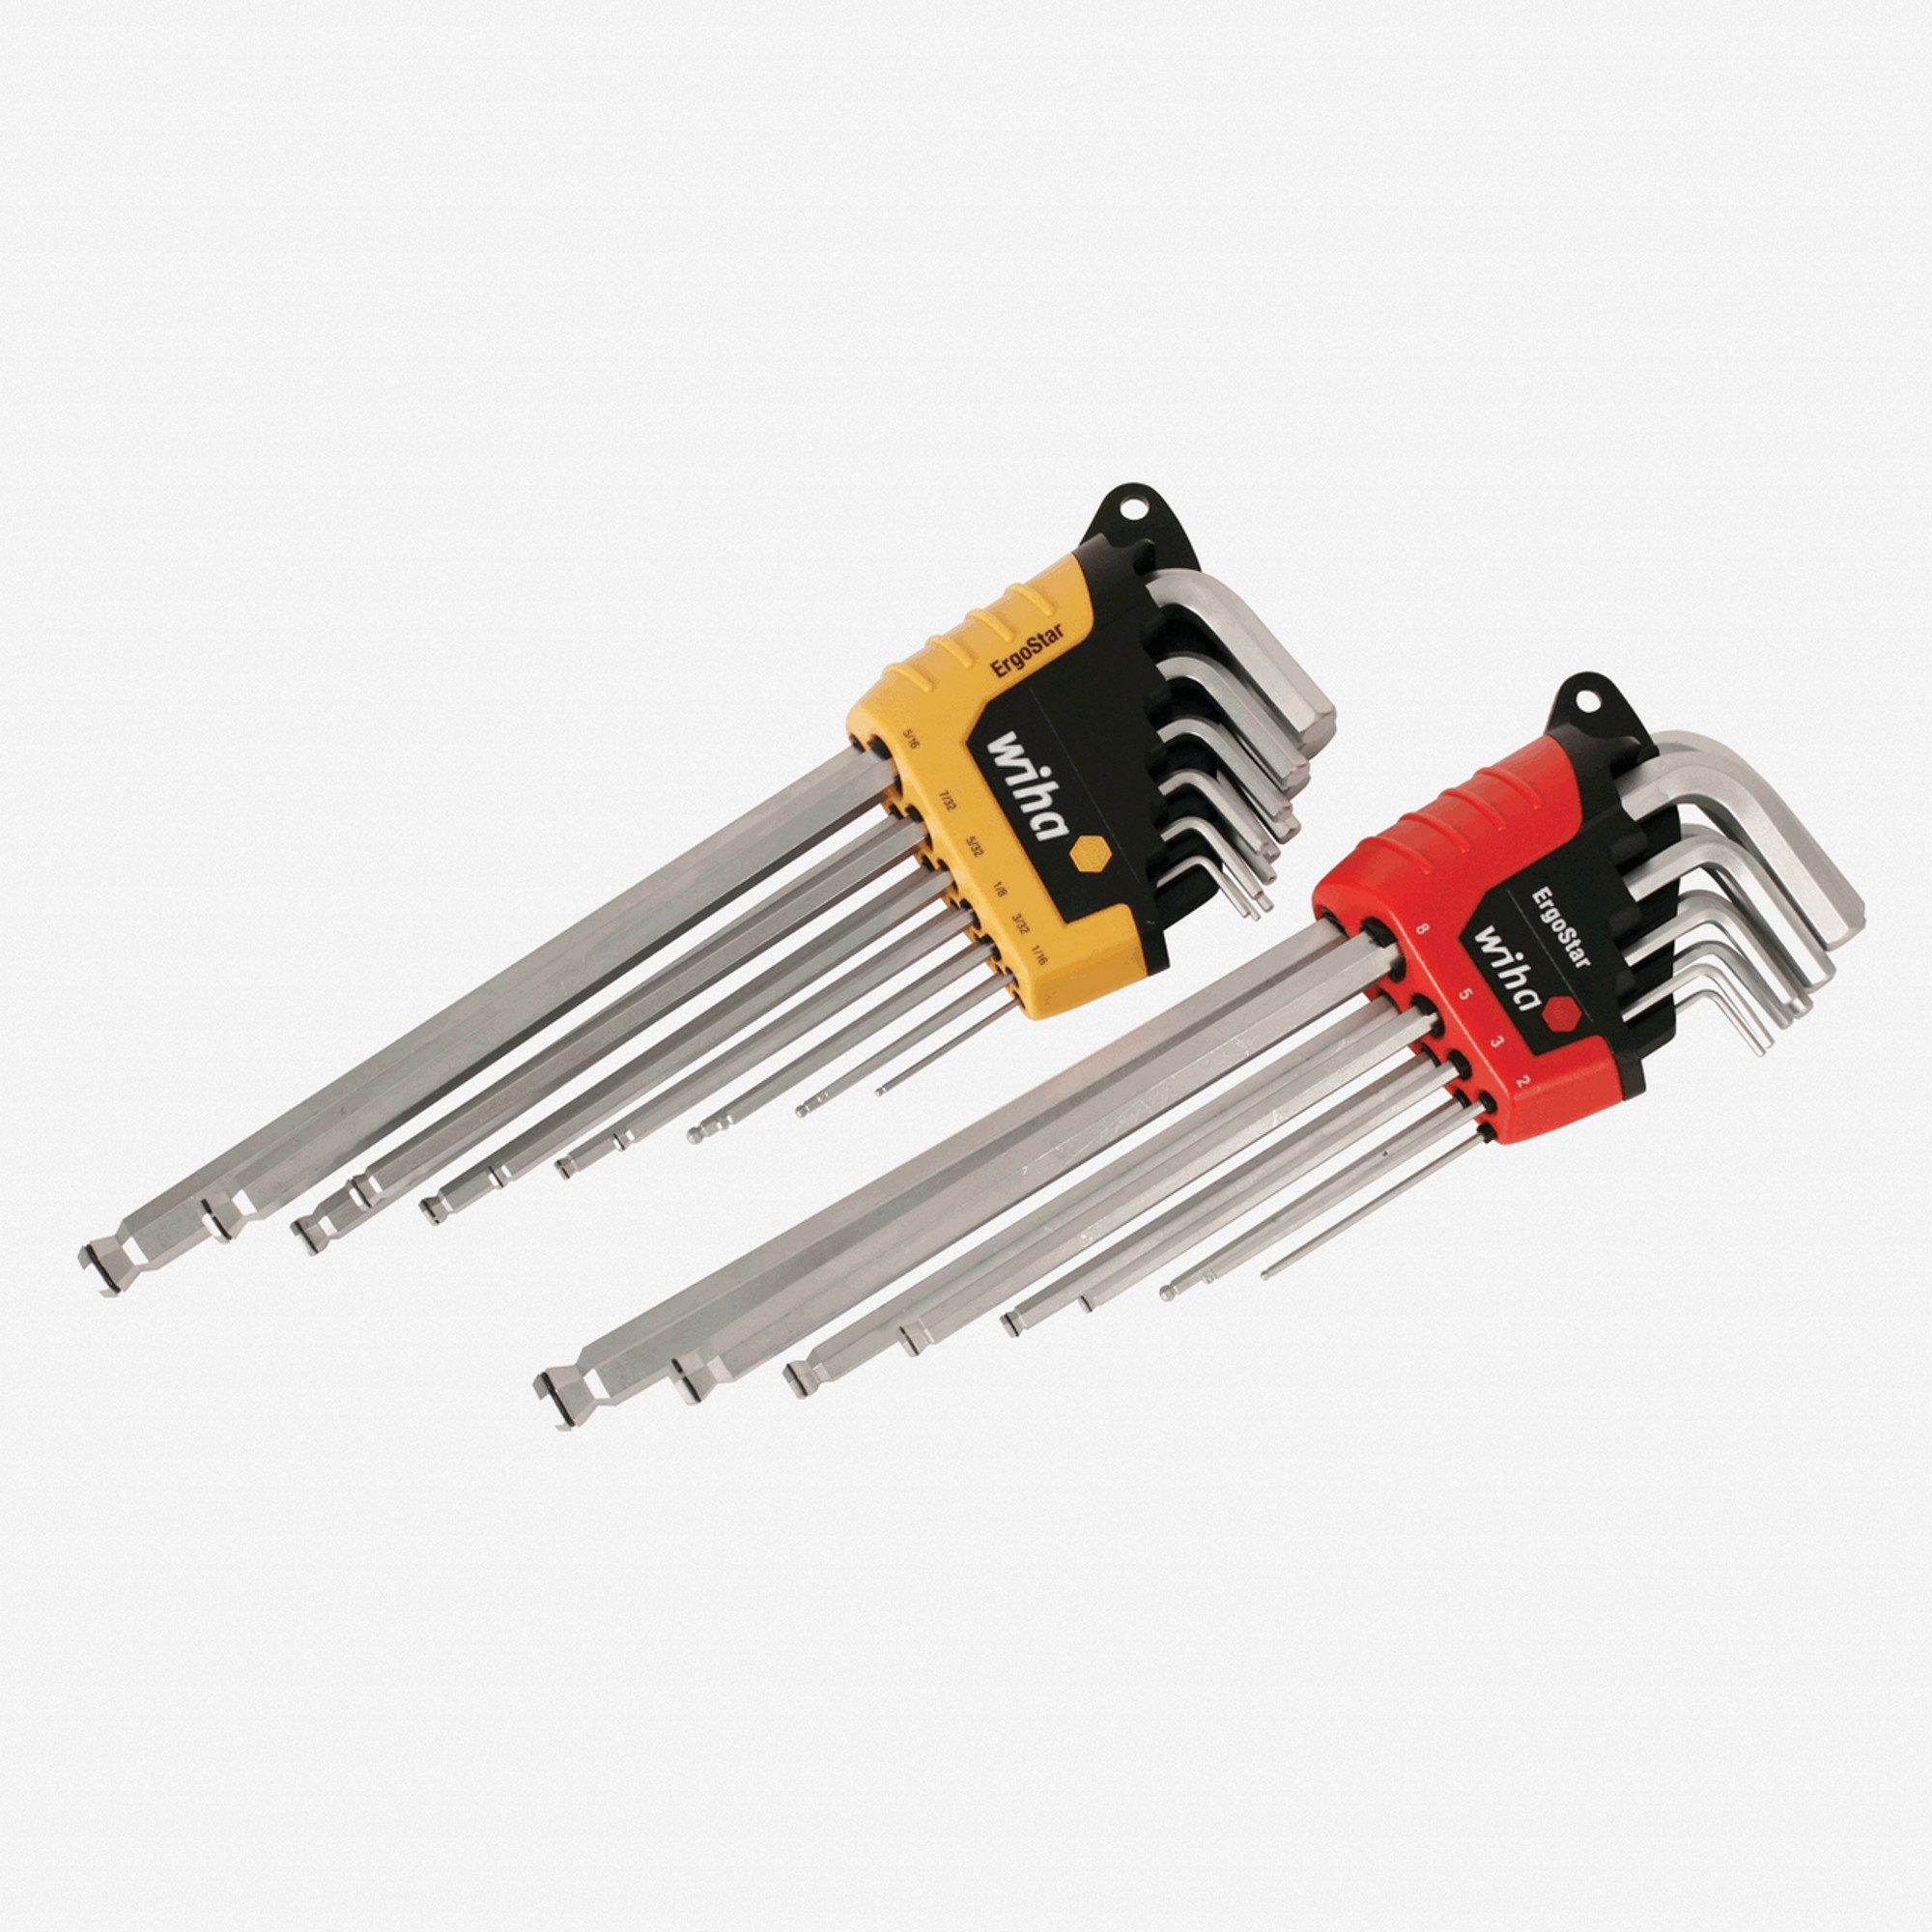 22 pcs Hex Allen L Wrench SAE /& Metric Set Long Arm Ball End with tool holder